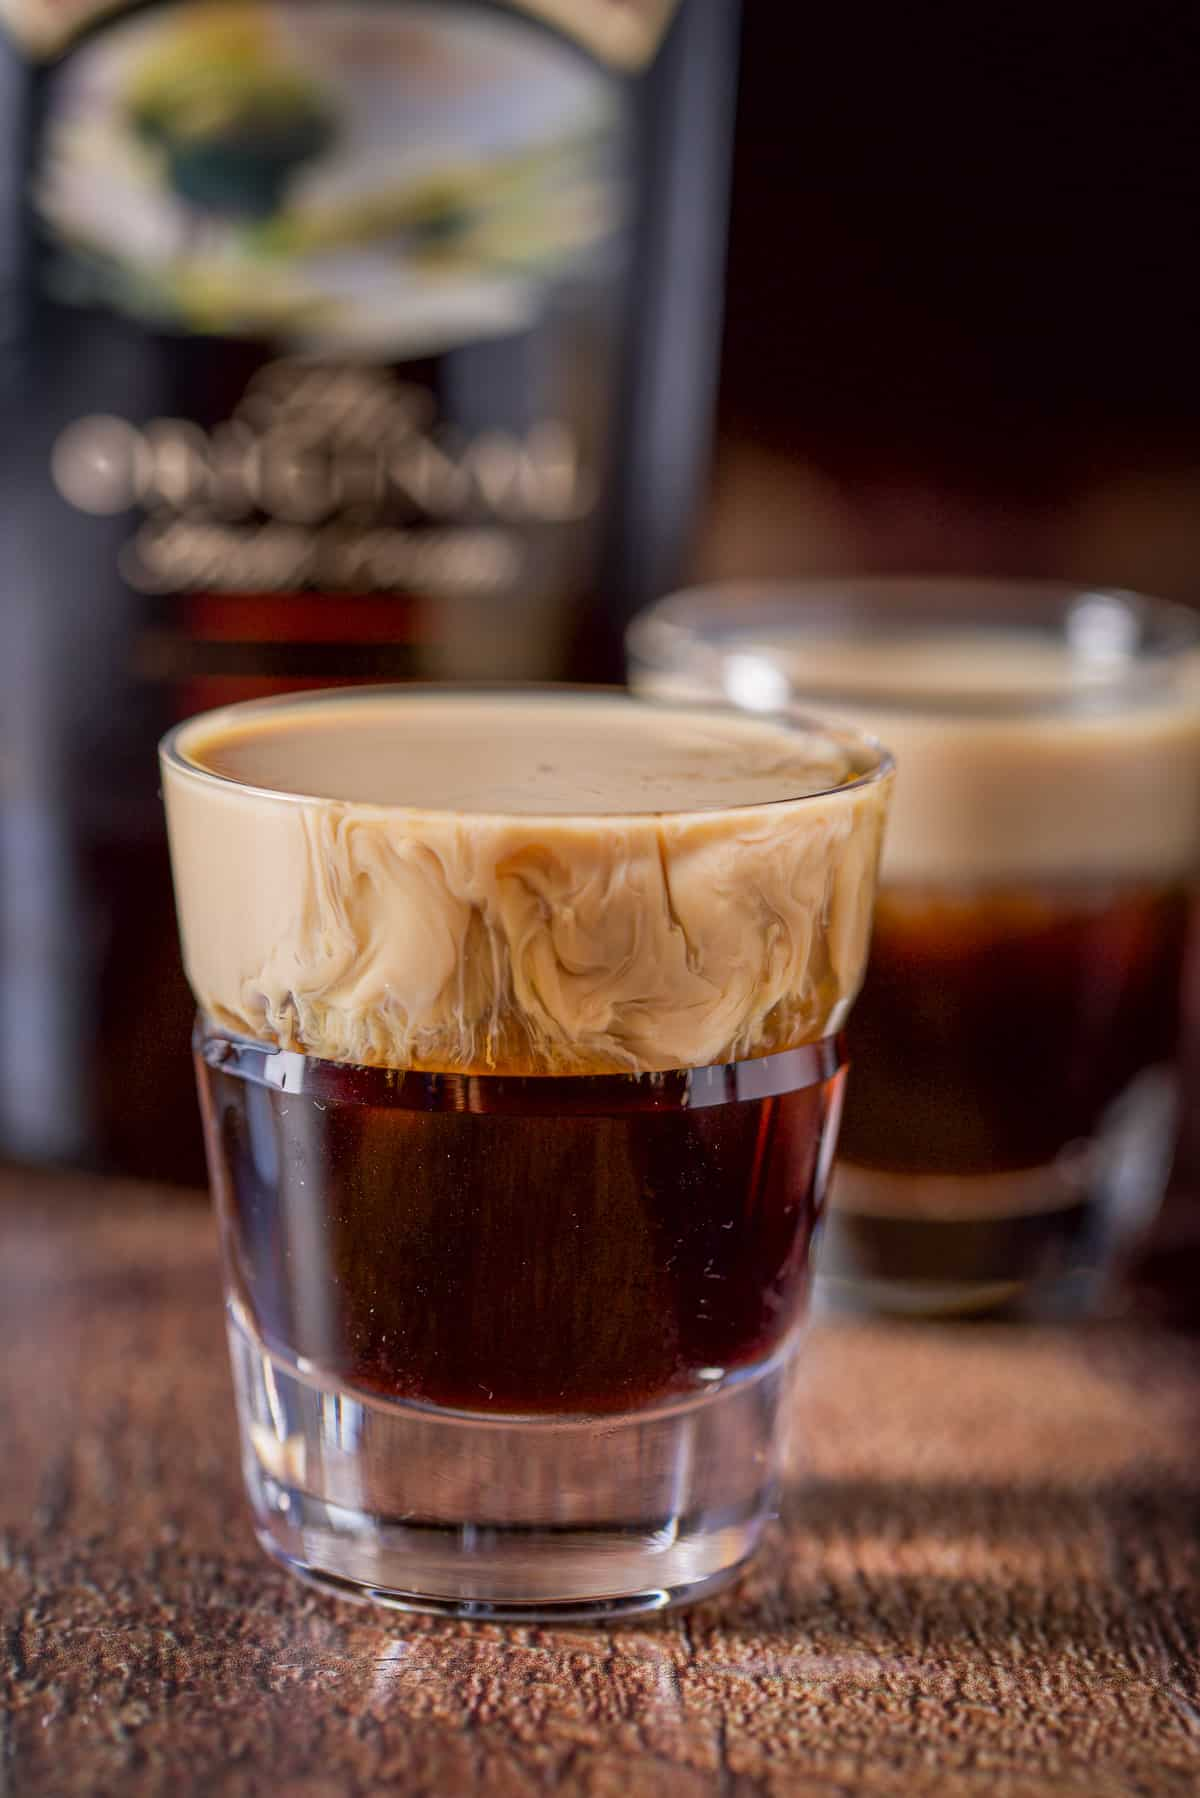 Baileys layered into the beveled glass with another glass and the bottle in the background